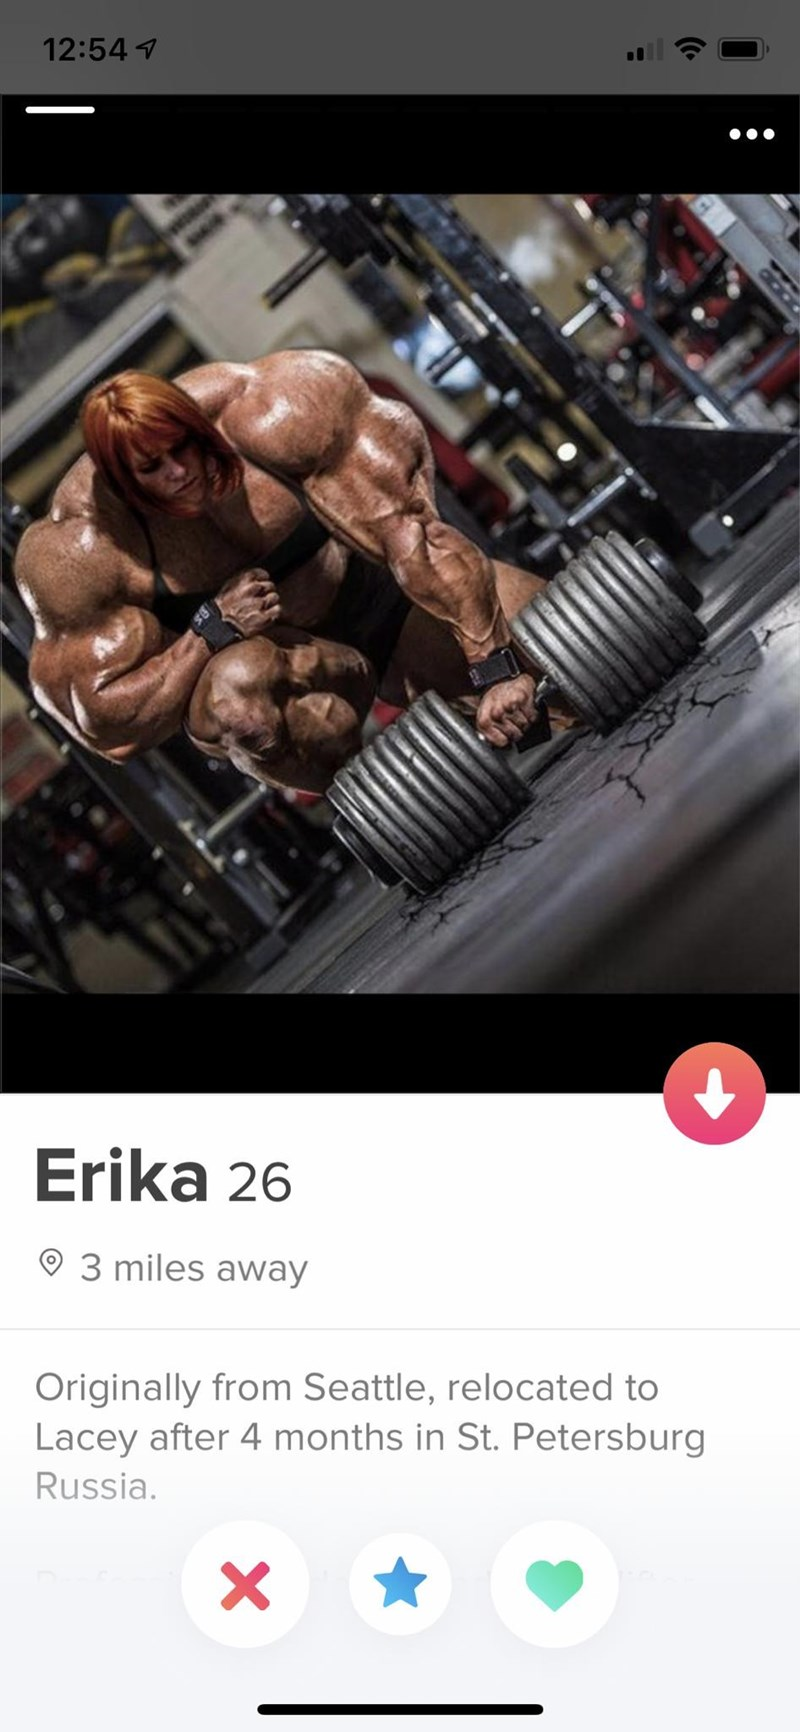 Bodybuilding - 12:54 Erika 26 93 miles away Originally from Seattle, relocated to Lacey after 4 months in St. Petersburg Russia acao